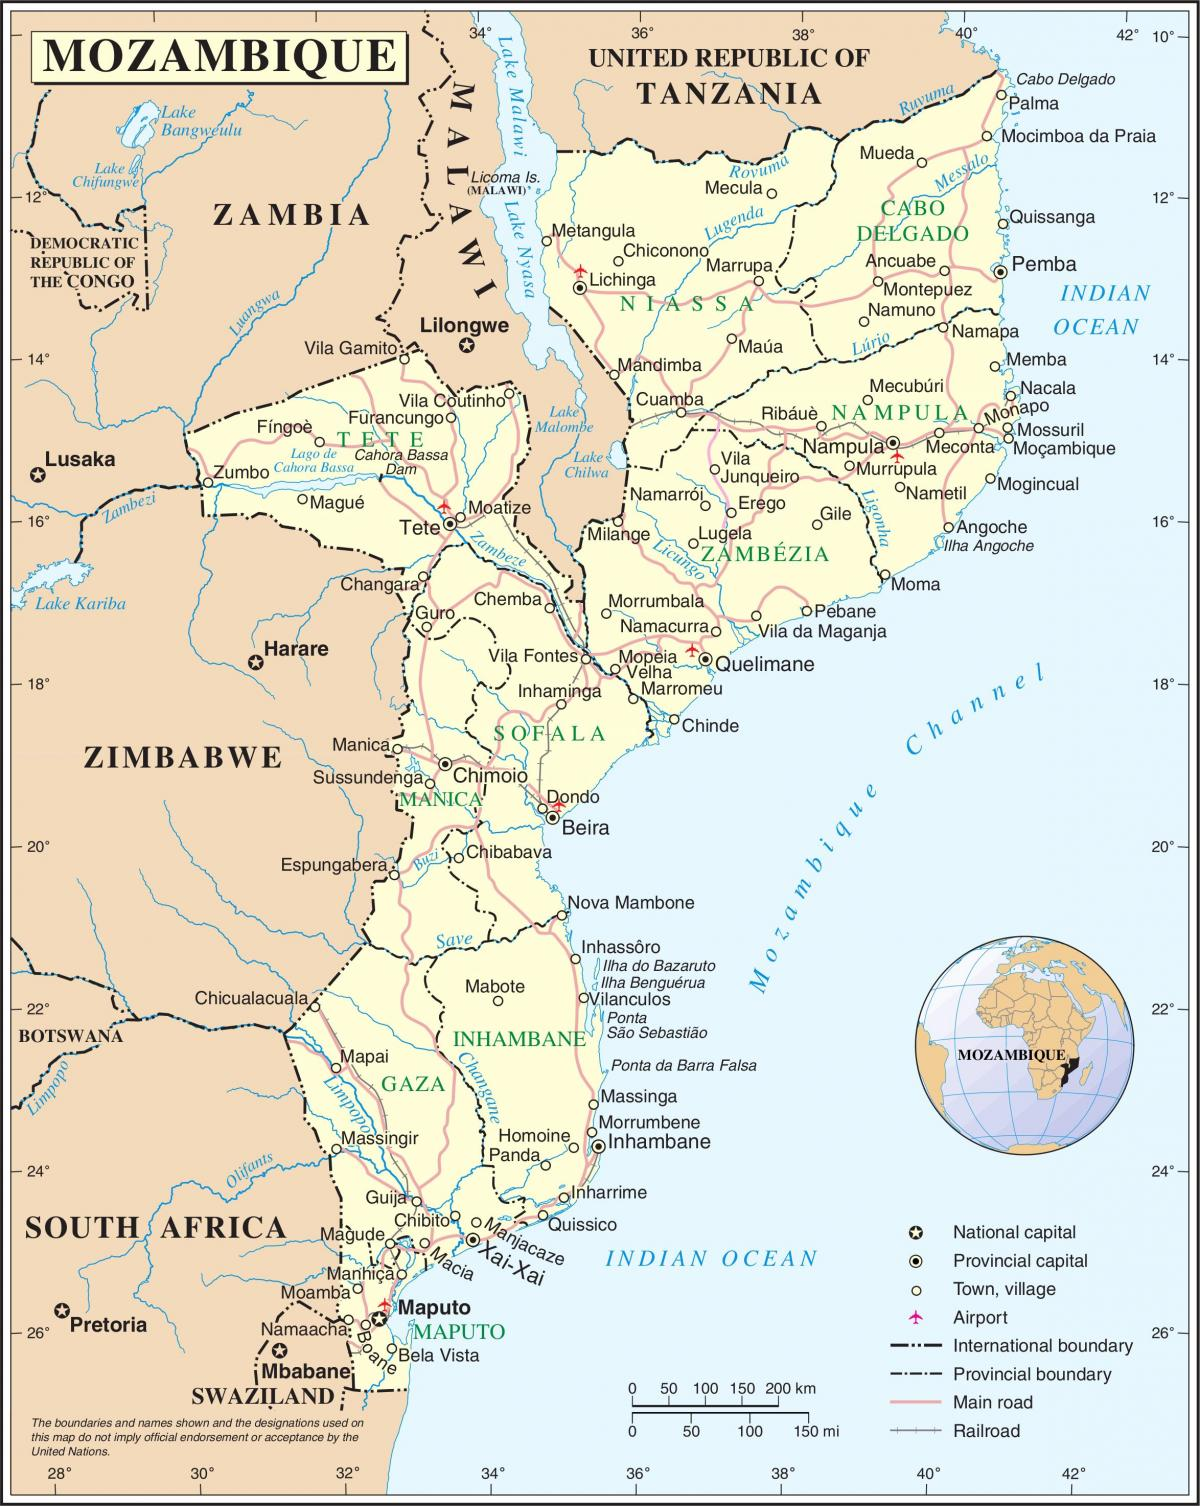 airports in Mozambique on a map